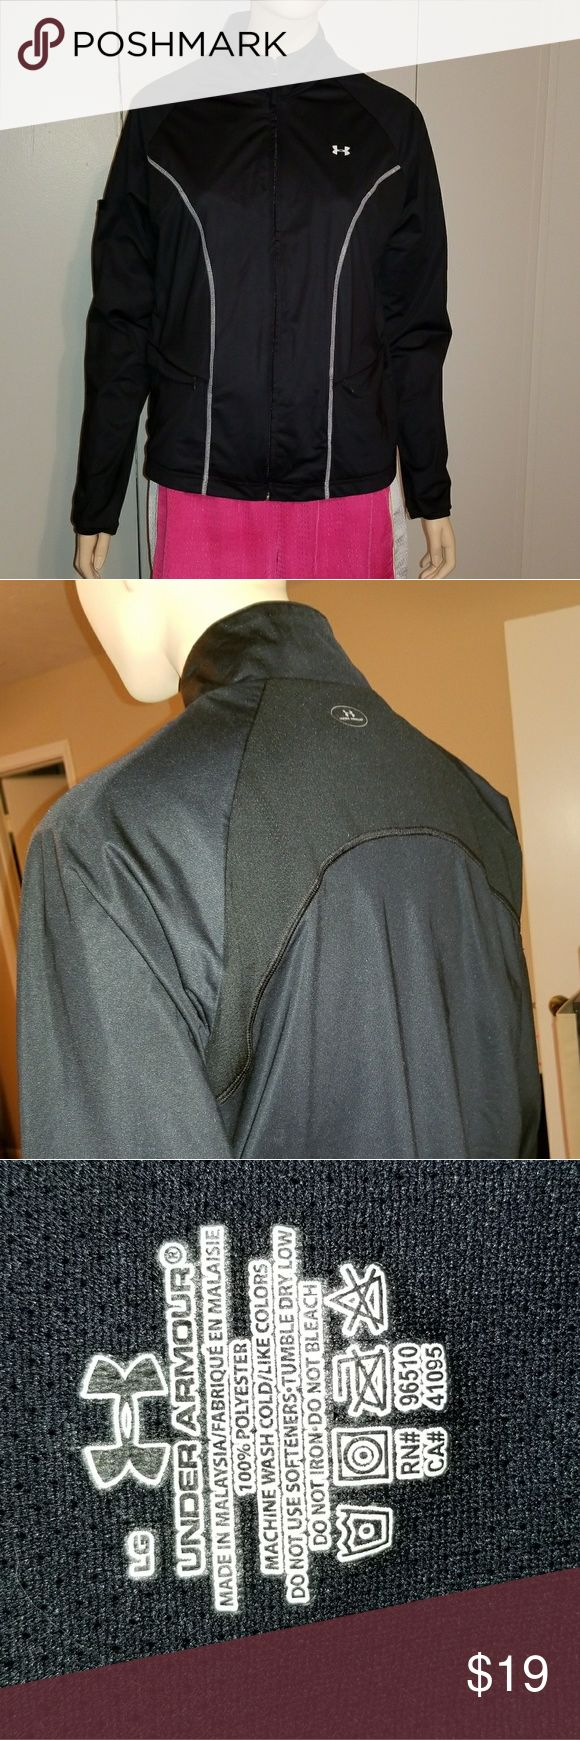 SALE EUC Under Armour Jacket Worn maybe twice. Has zippered front pockets, a pocket on the right sleeve, vented armpits, and an inner lining. Under Armour Jackets & Coats